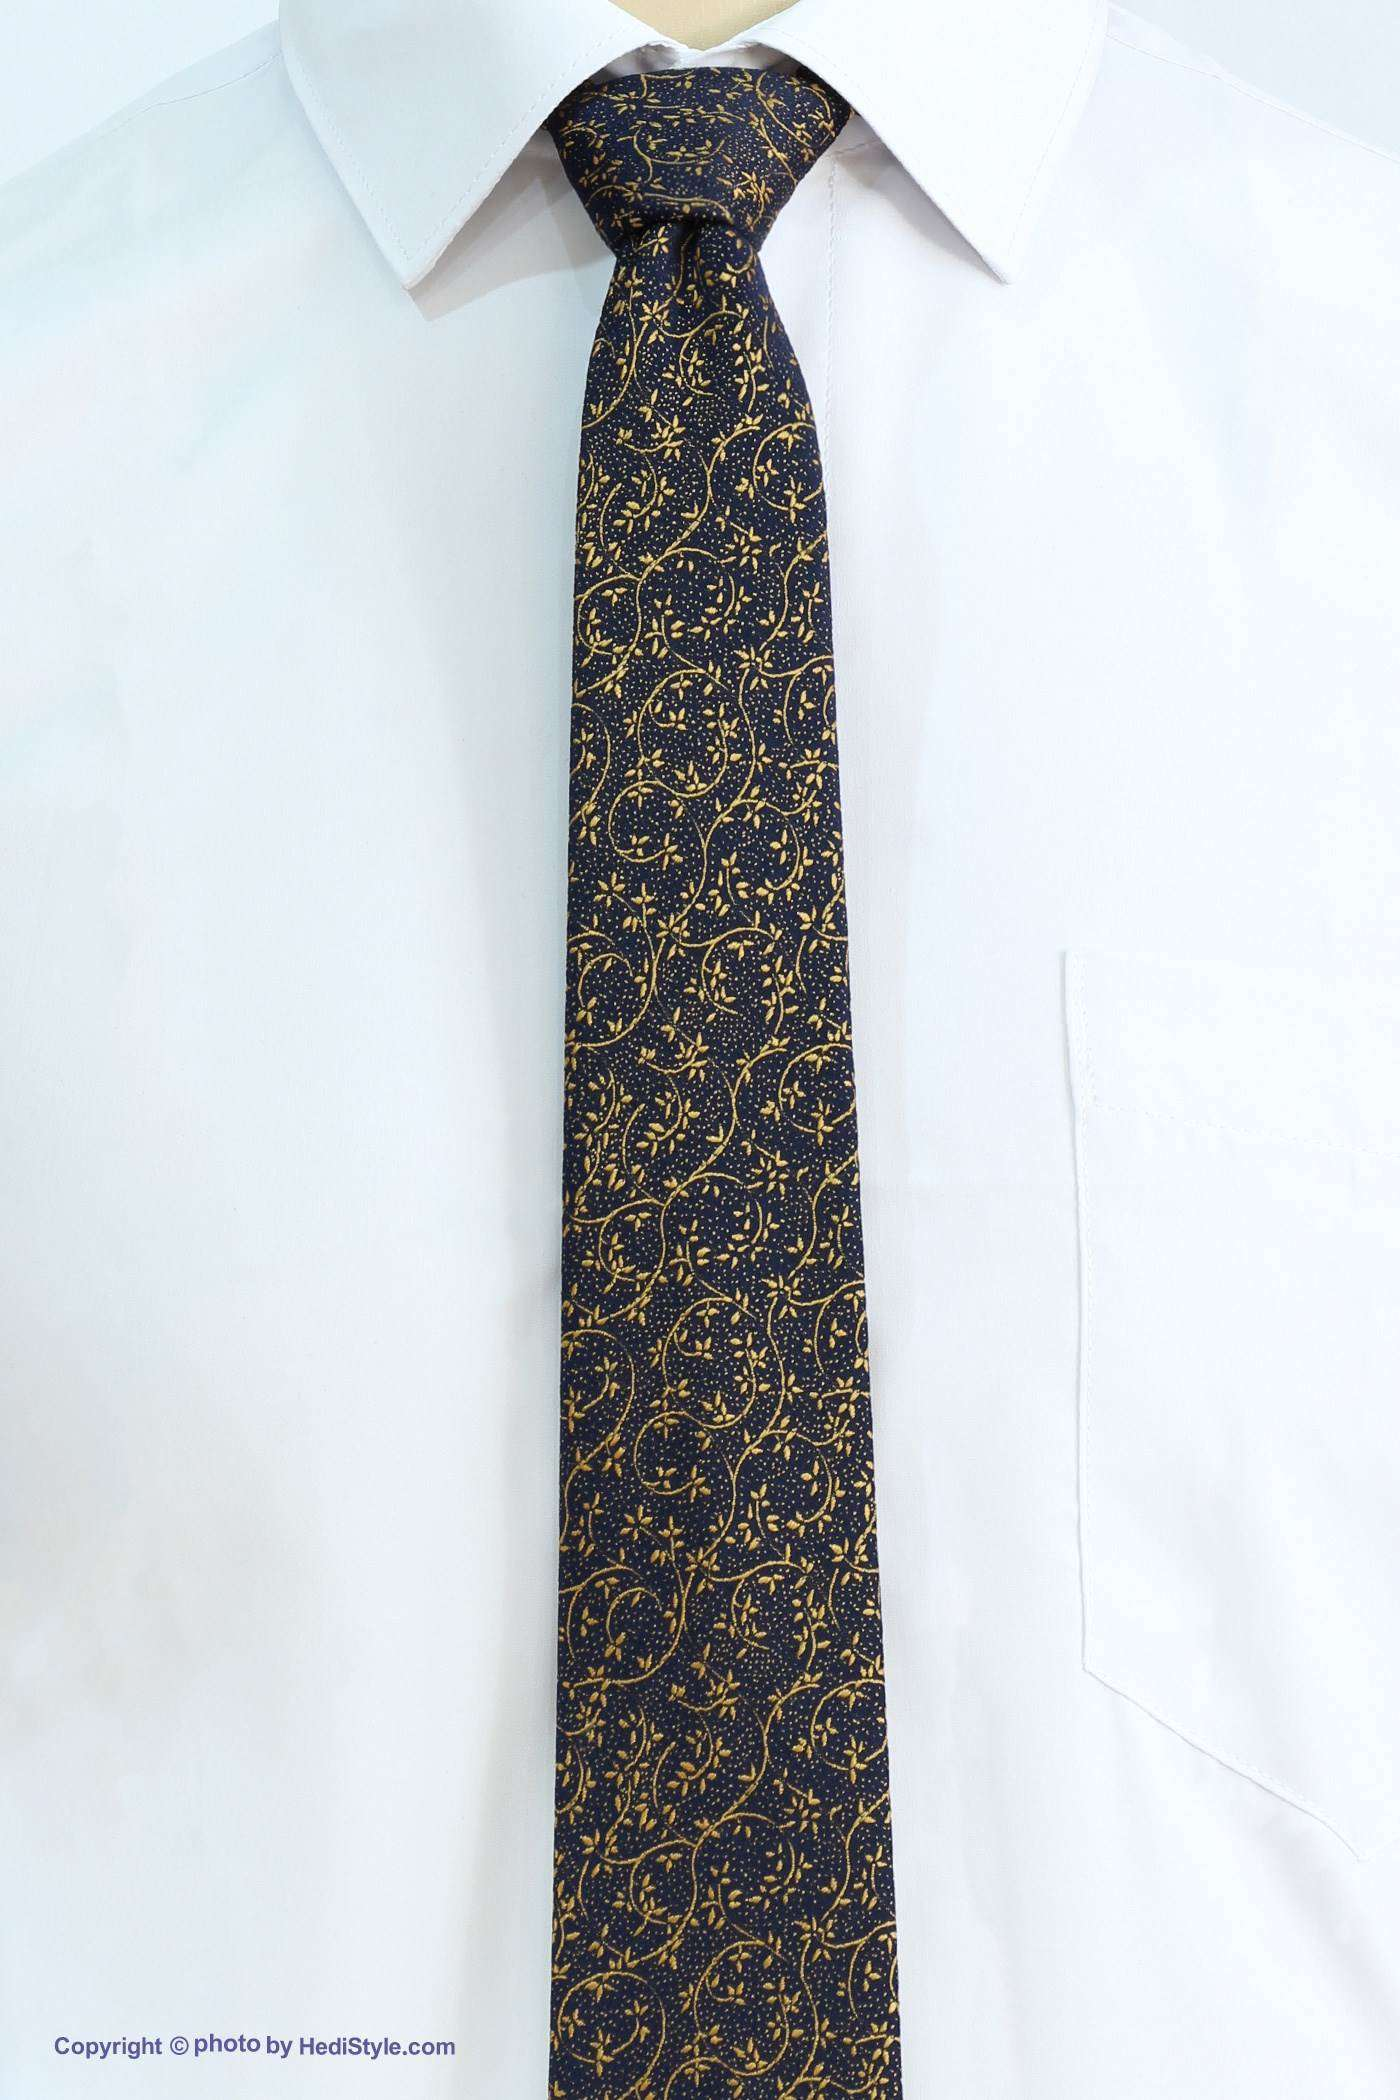 Tie and skin set of golden black flower design